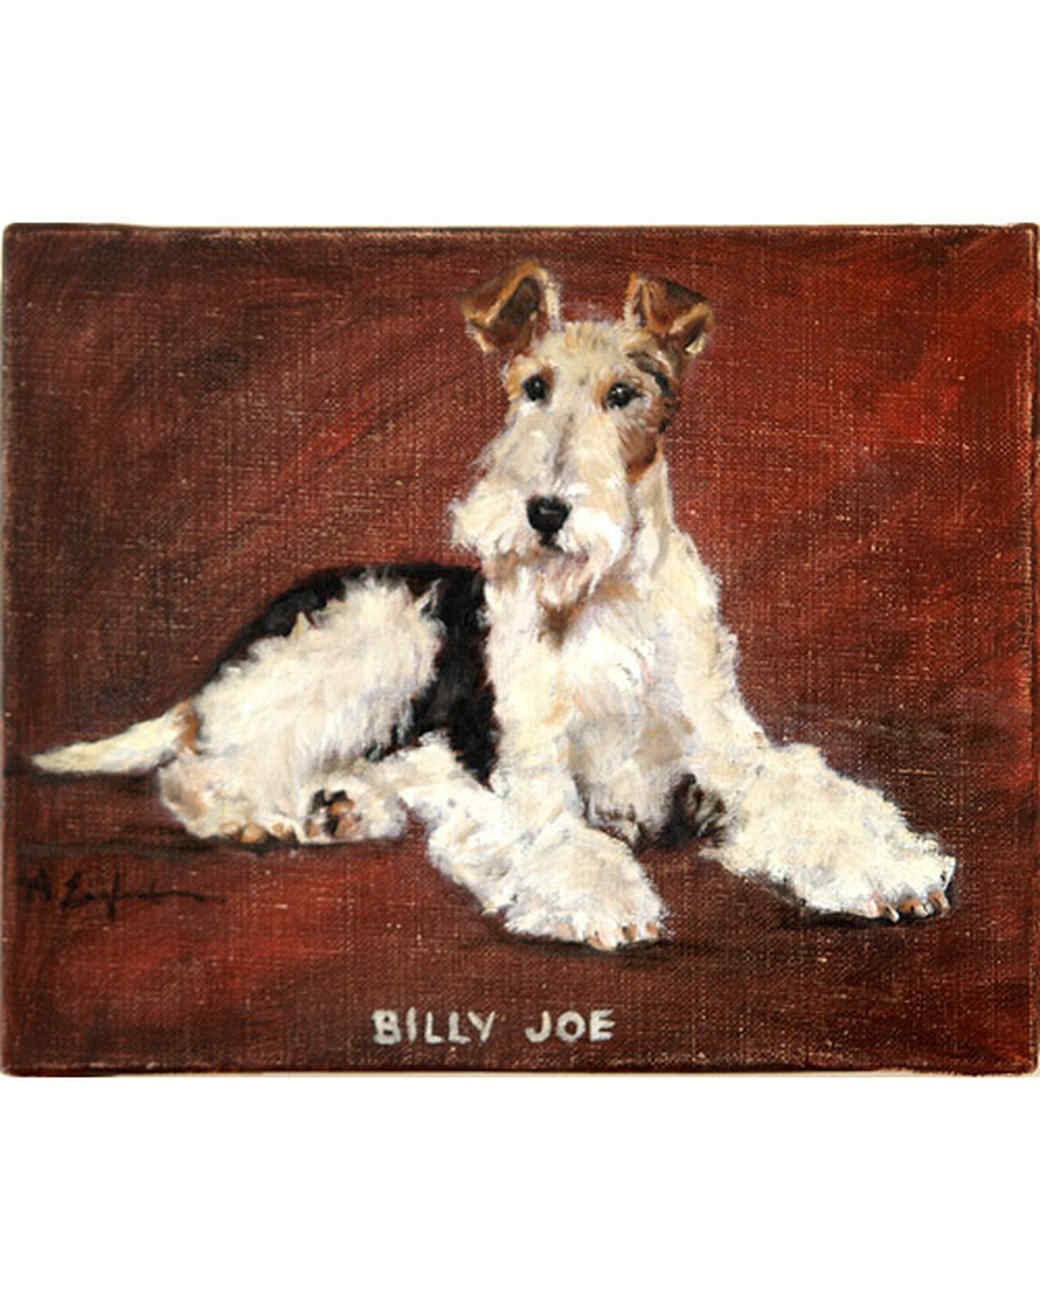 pets_billy_joe.jpg